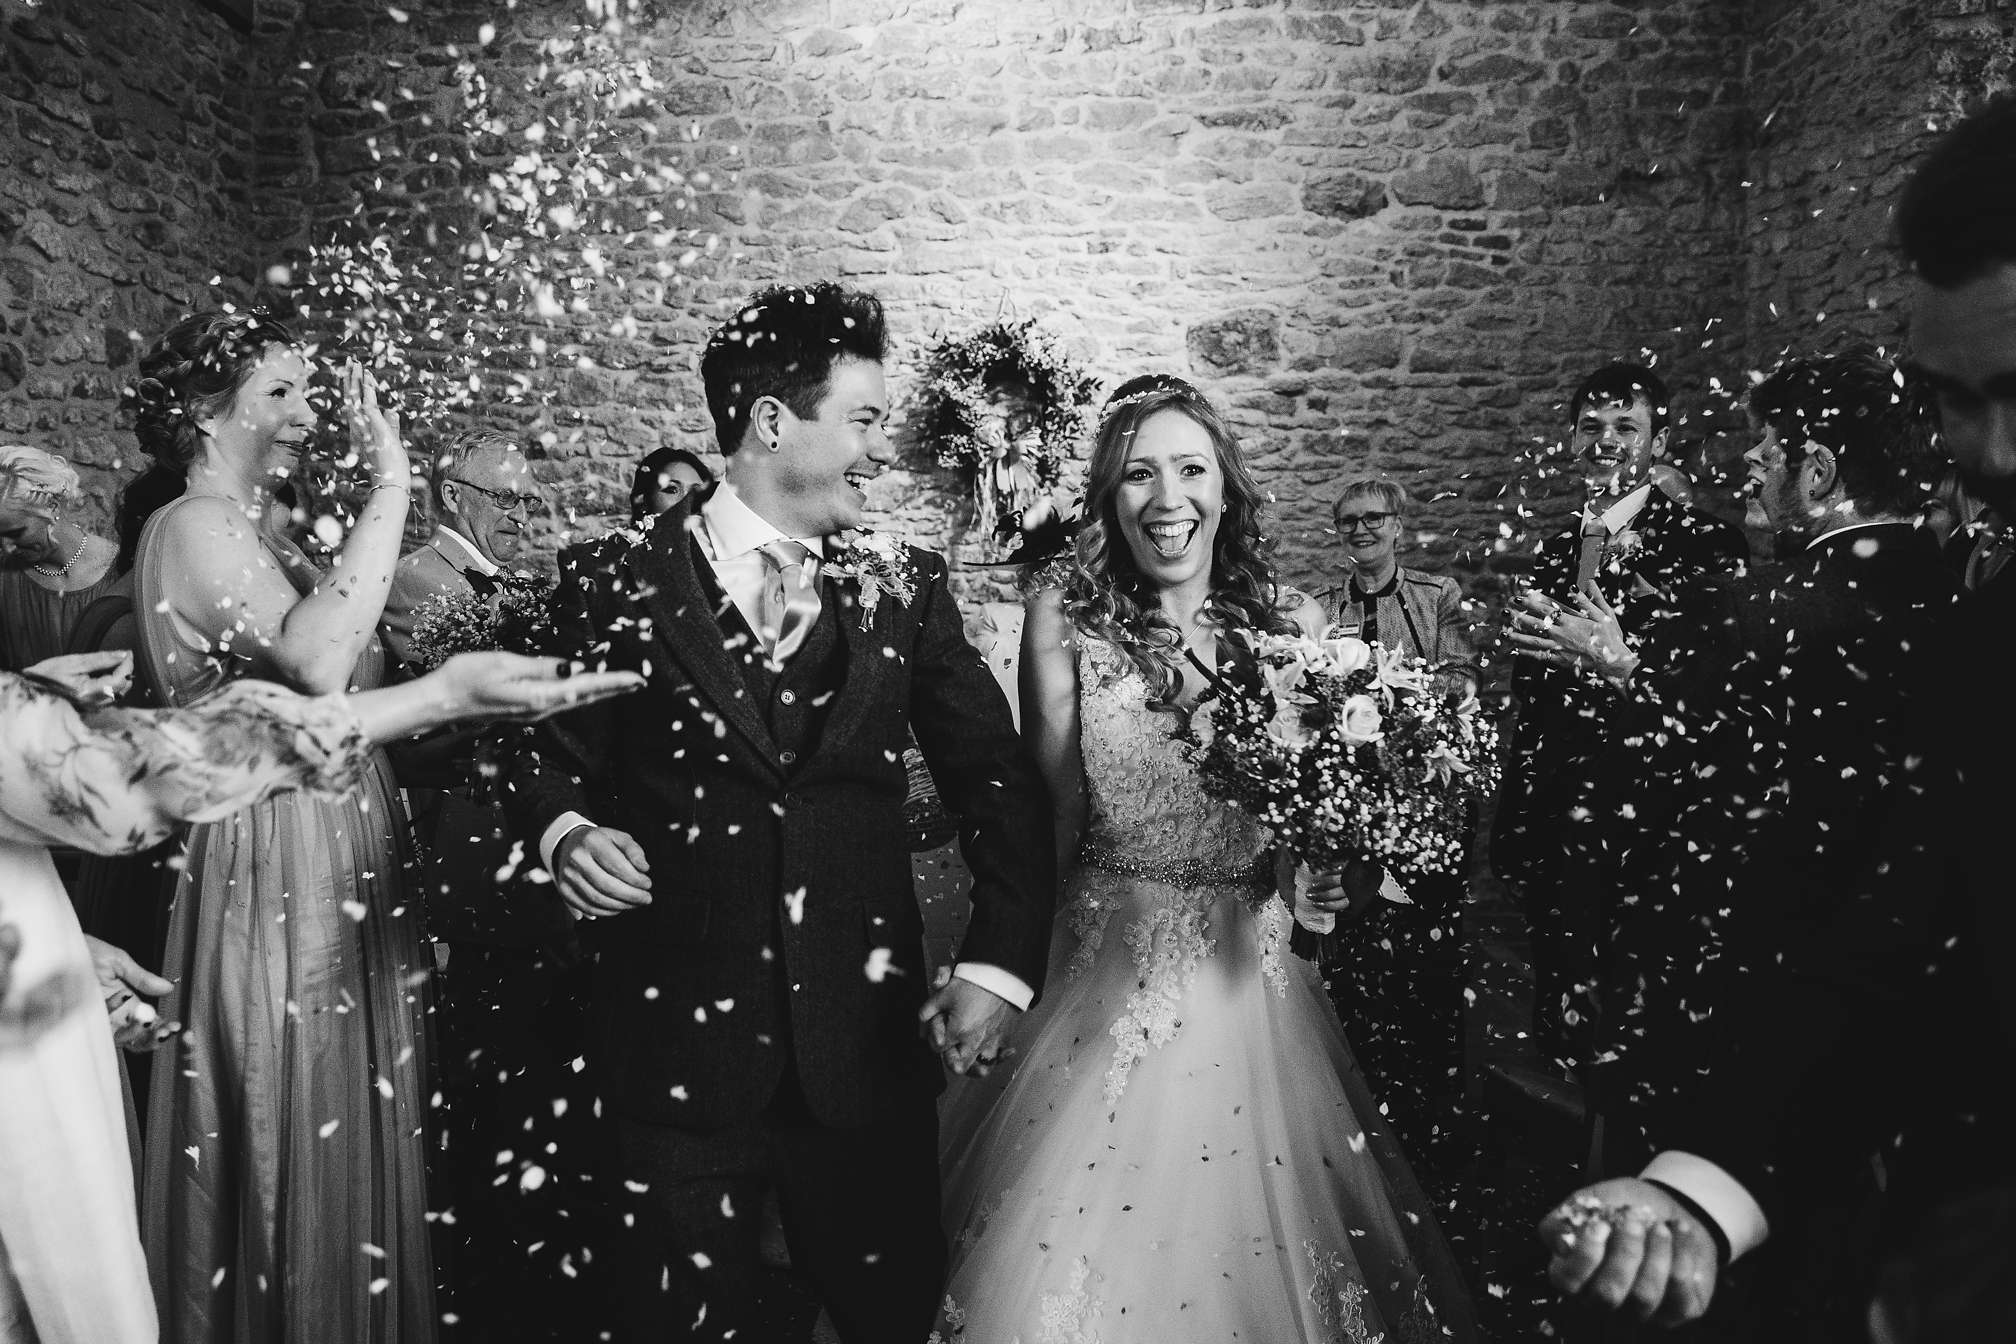 Dodford Manor Confetti Picture in Black and White